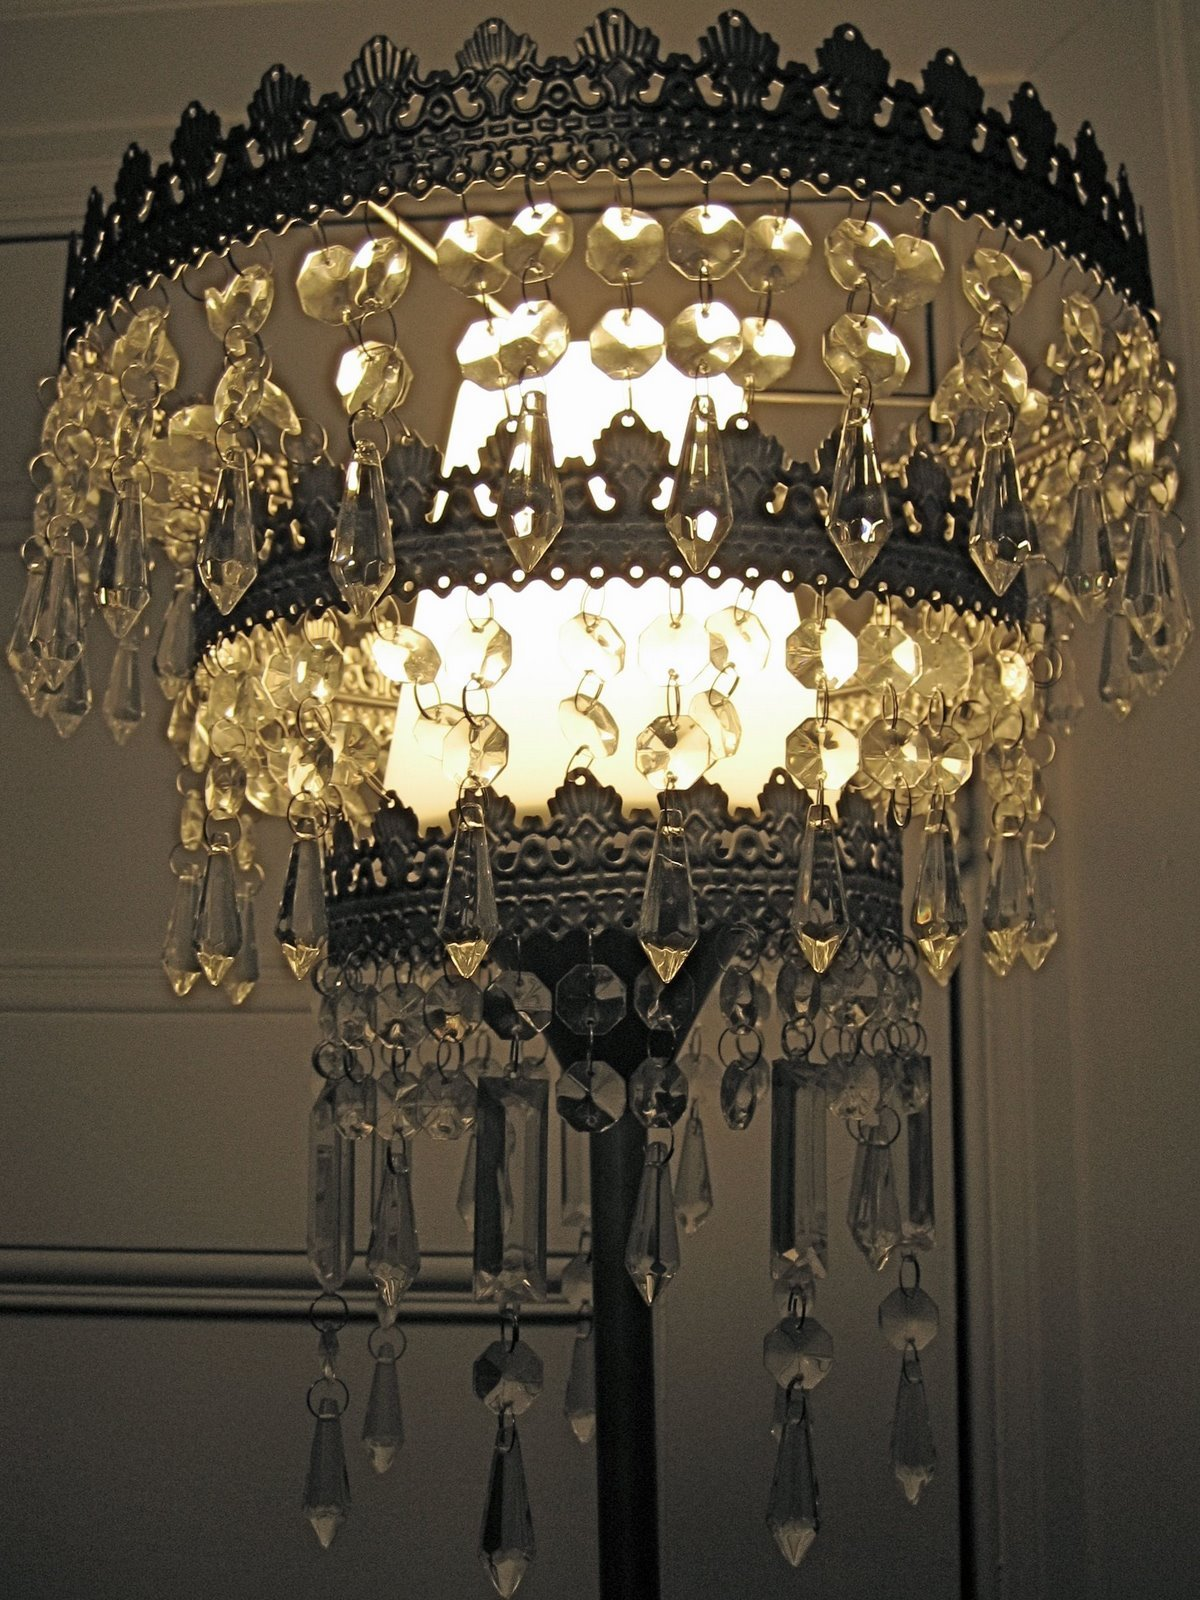 Get one of these easy-on-the-pocket chandeliers - Be Bright! Get One Of These Easy-on-the-pocket Chandeliers - IKEA